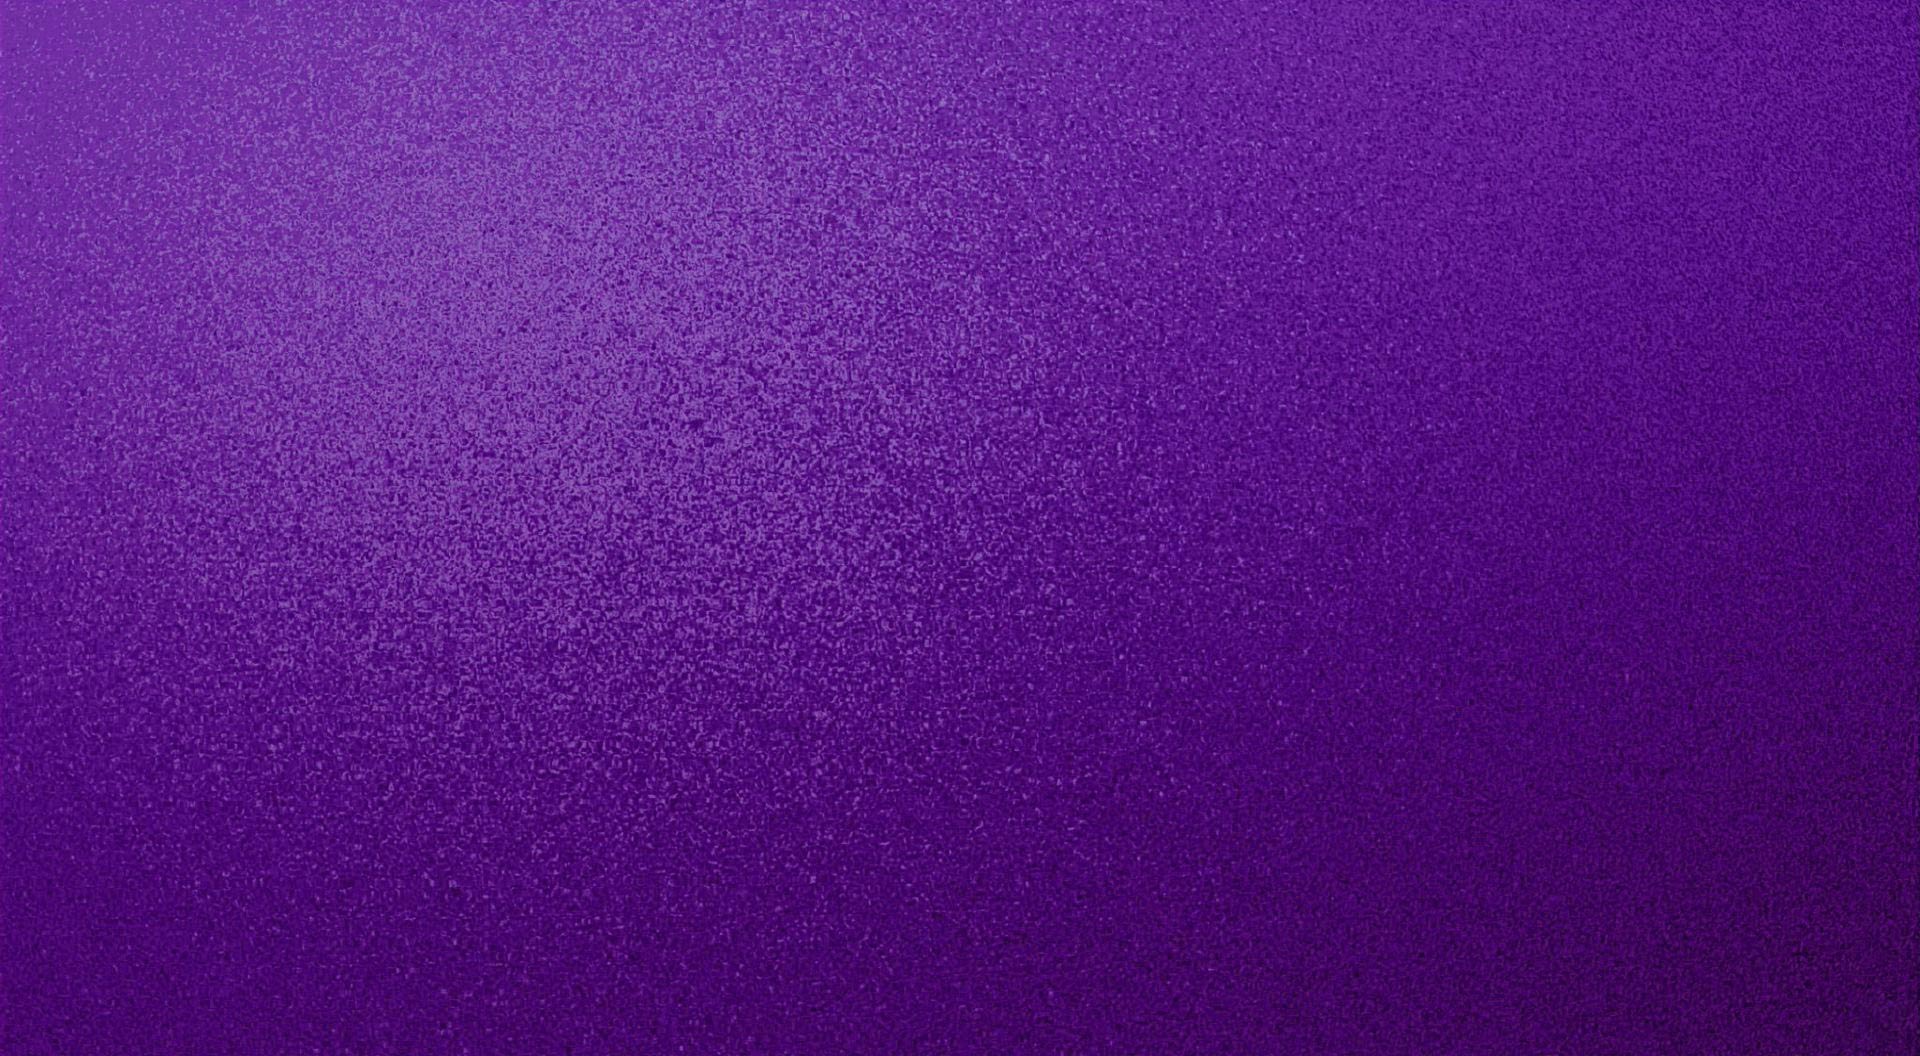 Amazoncom purple wallpapers Apps amp Games